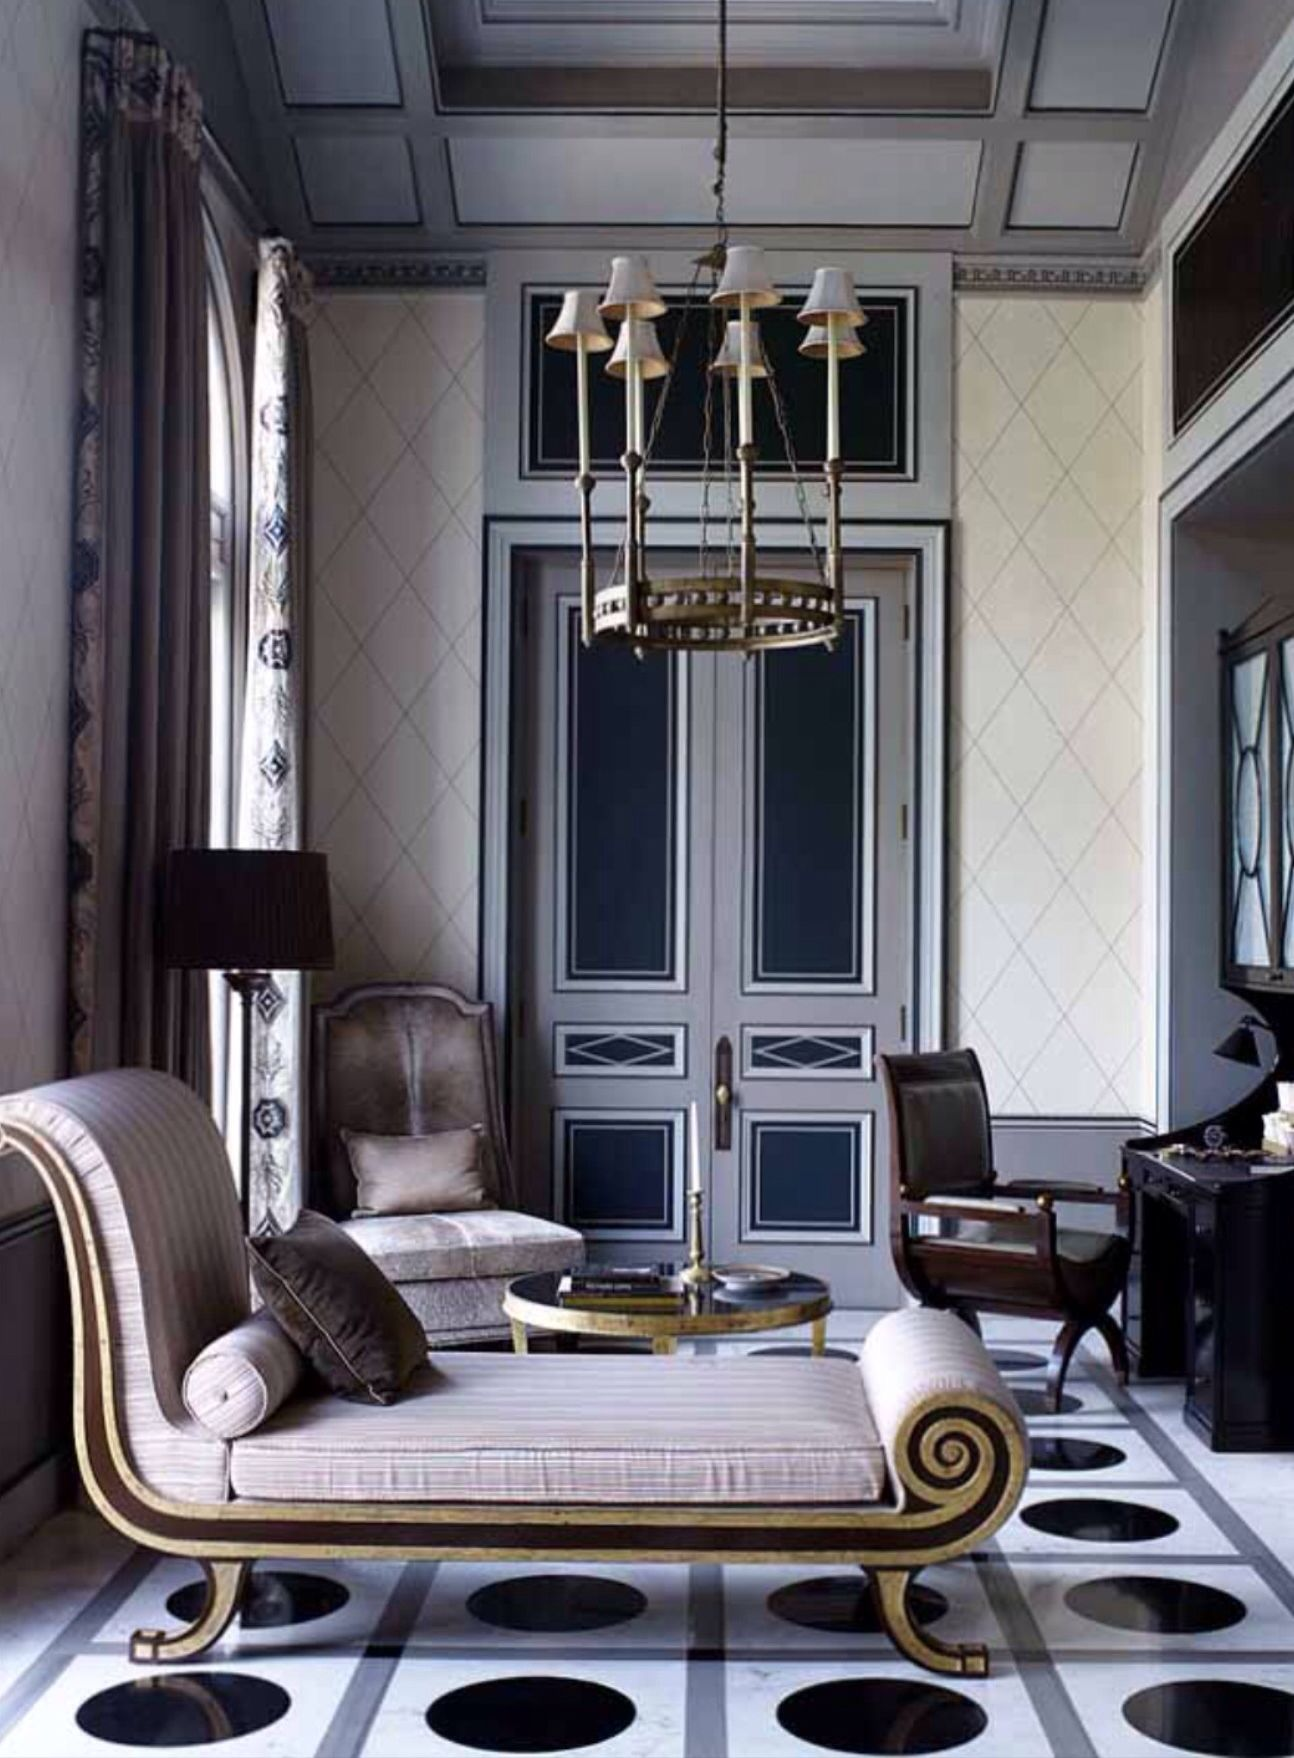 Room designed by jean louis denoit accessorize the room